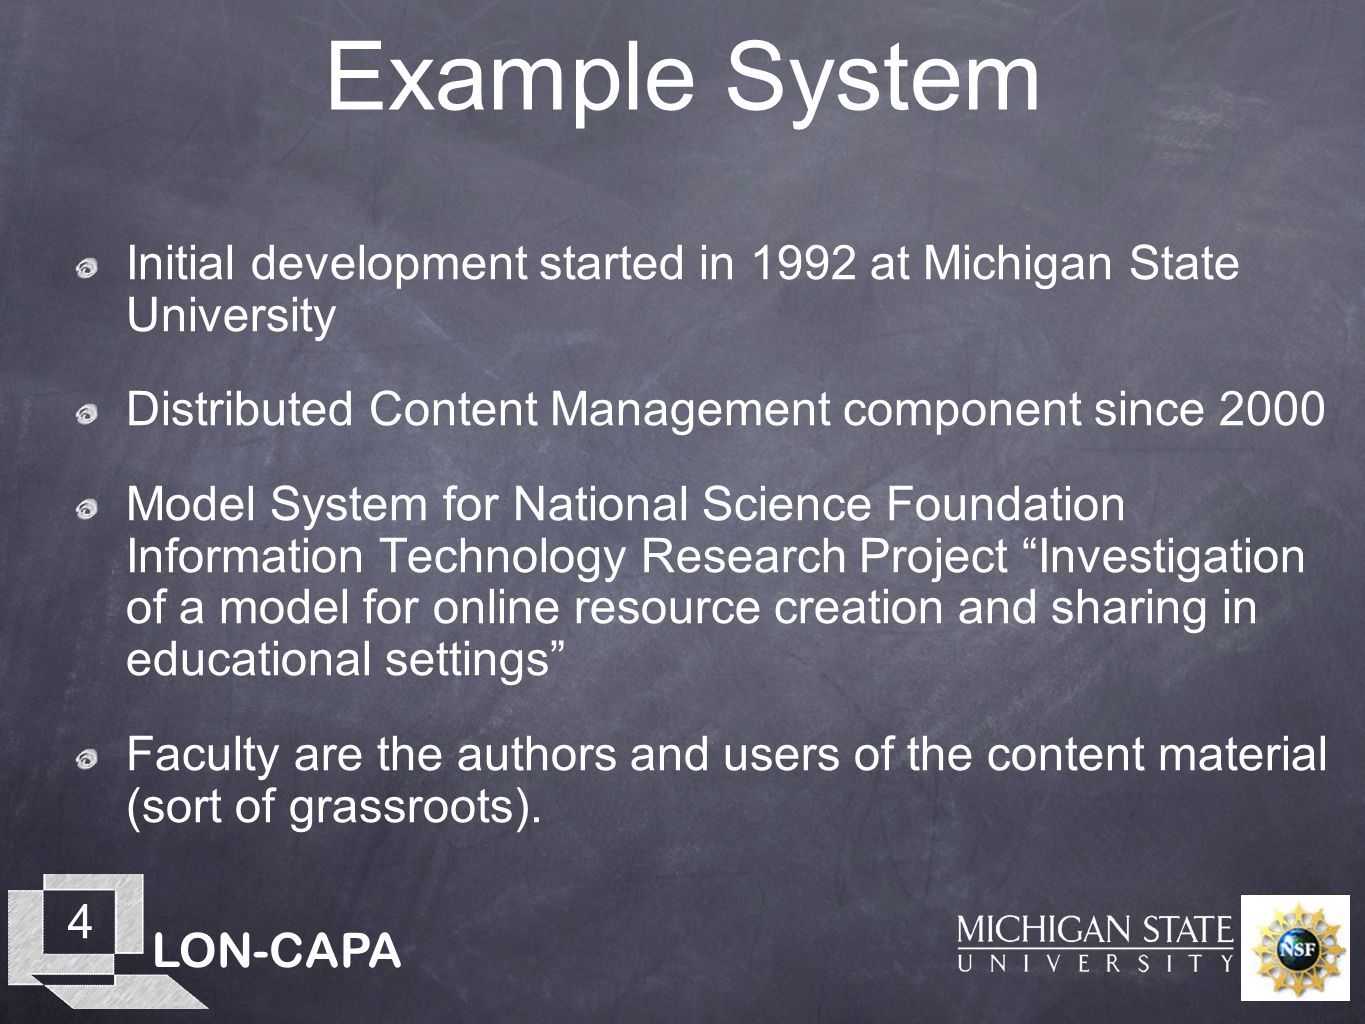 LON-CAPA 4 Example System Initial development started in 1992 at Michigan State University Distributed Content Management component since 2000 Model System for National Science Foundation Information Technology Research Project Investigation of a model for online resource creation and sharing in educational settings Faculty are the authors and users of the content material (sort of grassroots).